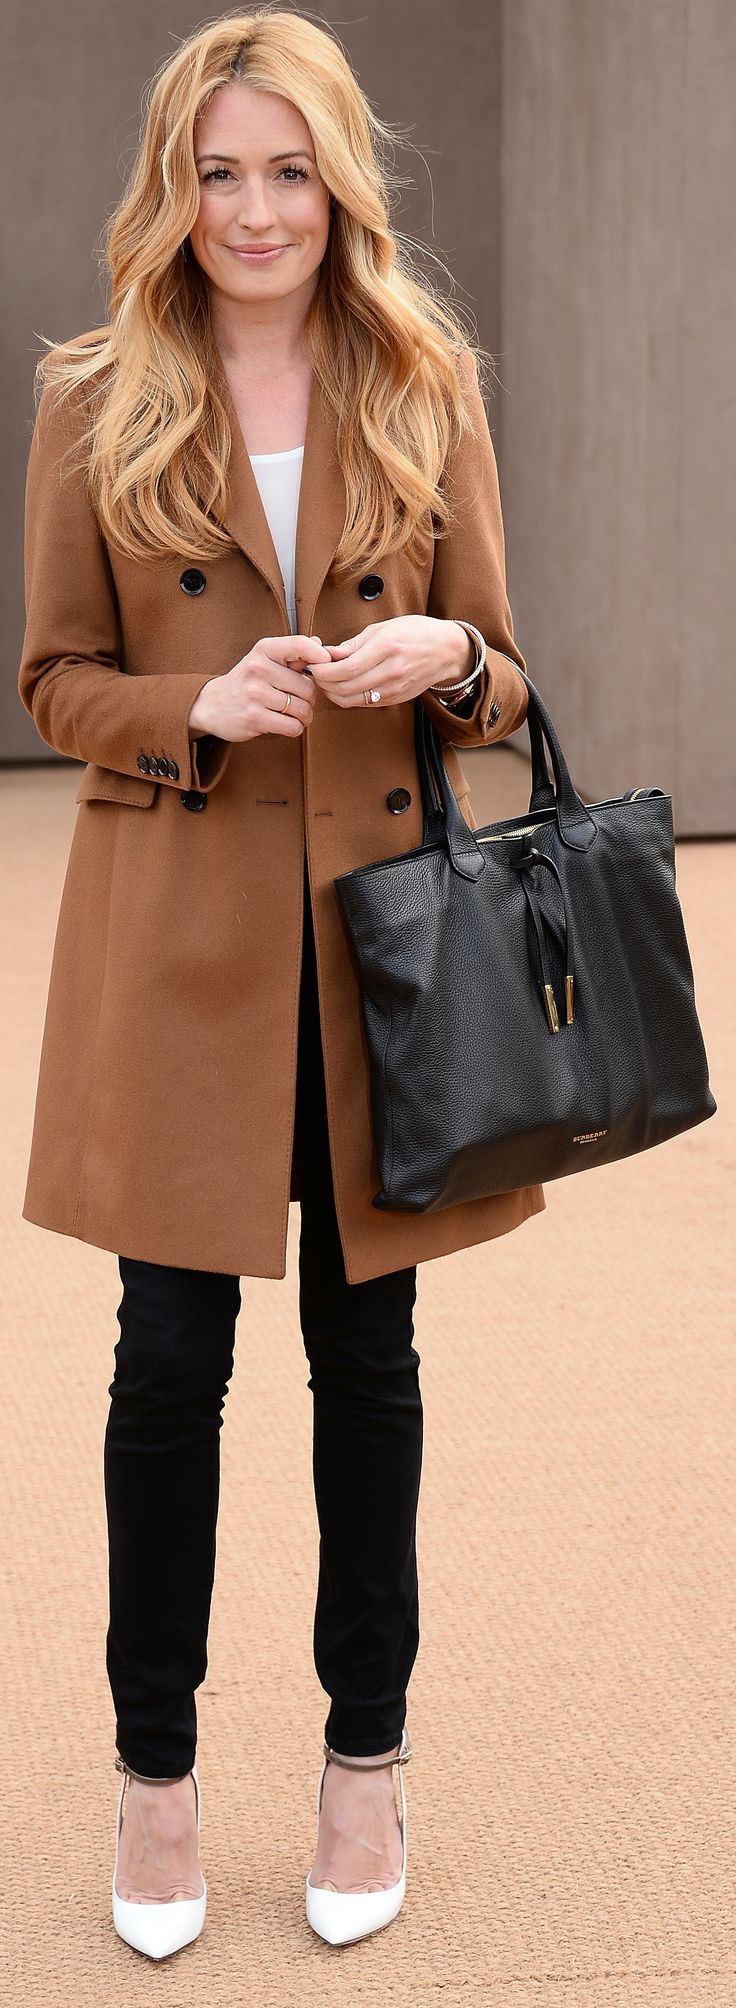 British presenter Cat Deeley wearing Burberry at the Burberry Prorsum Womenswear Autumn/Winter 2014 Show in London